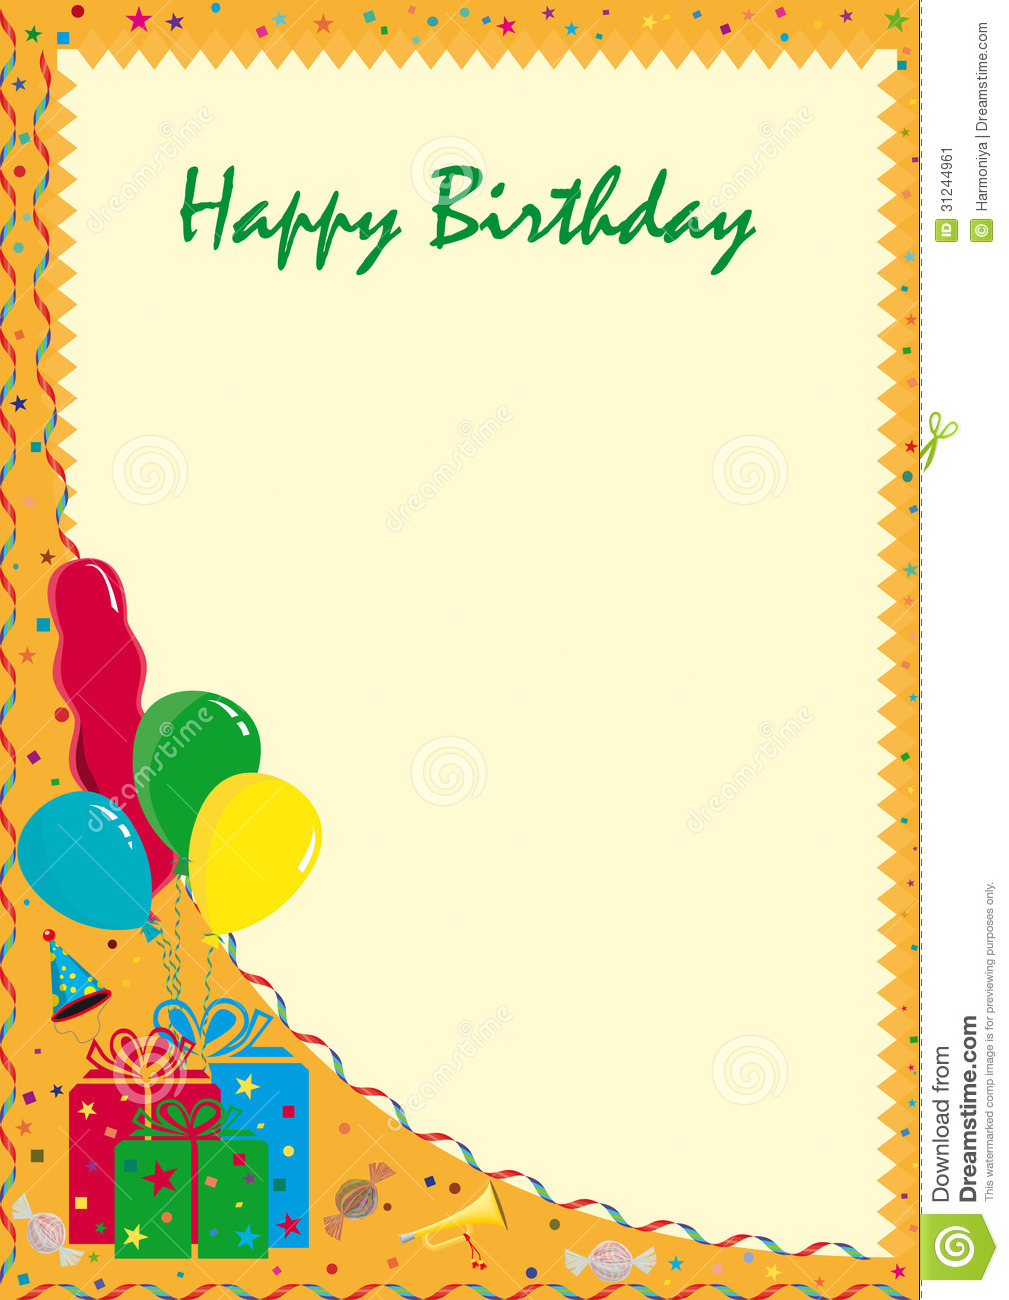 Postcard Happy Birthday Image Image 31244961 – Happy Birthday Post Cards